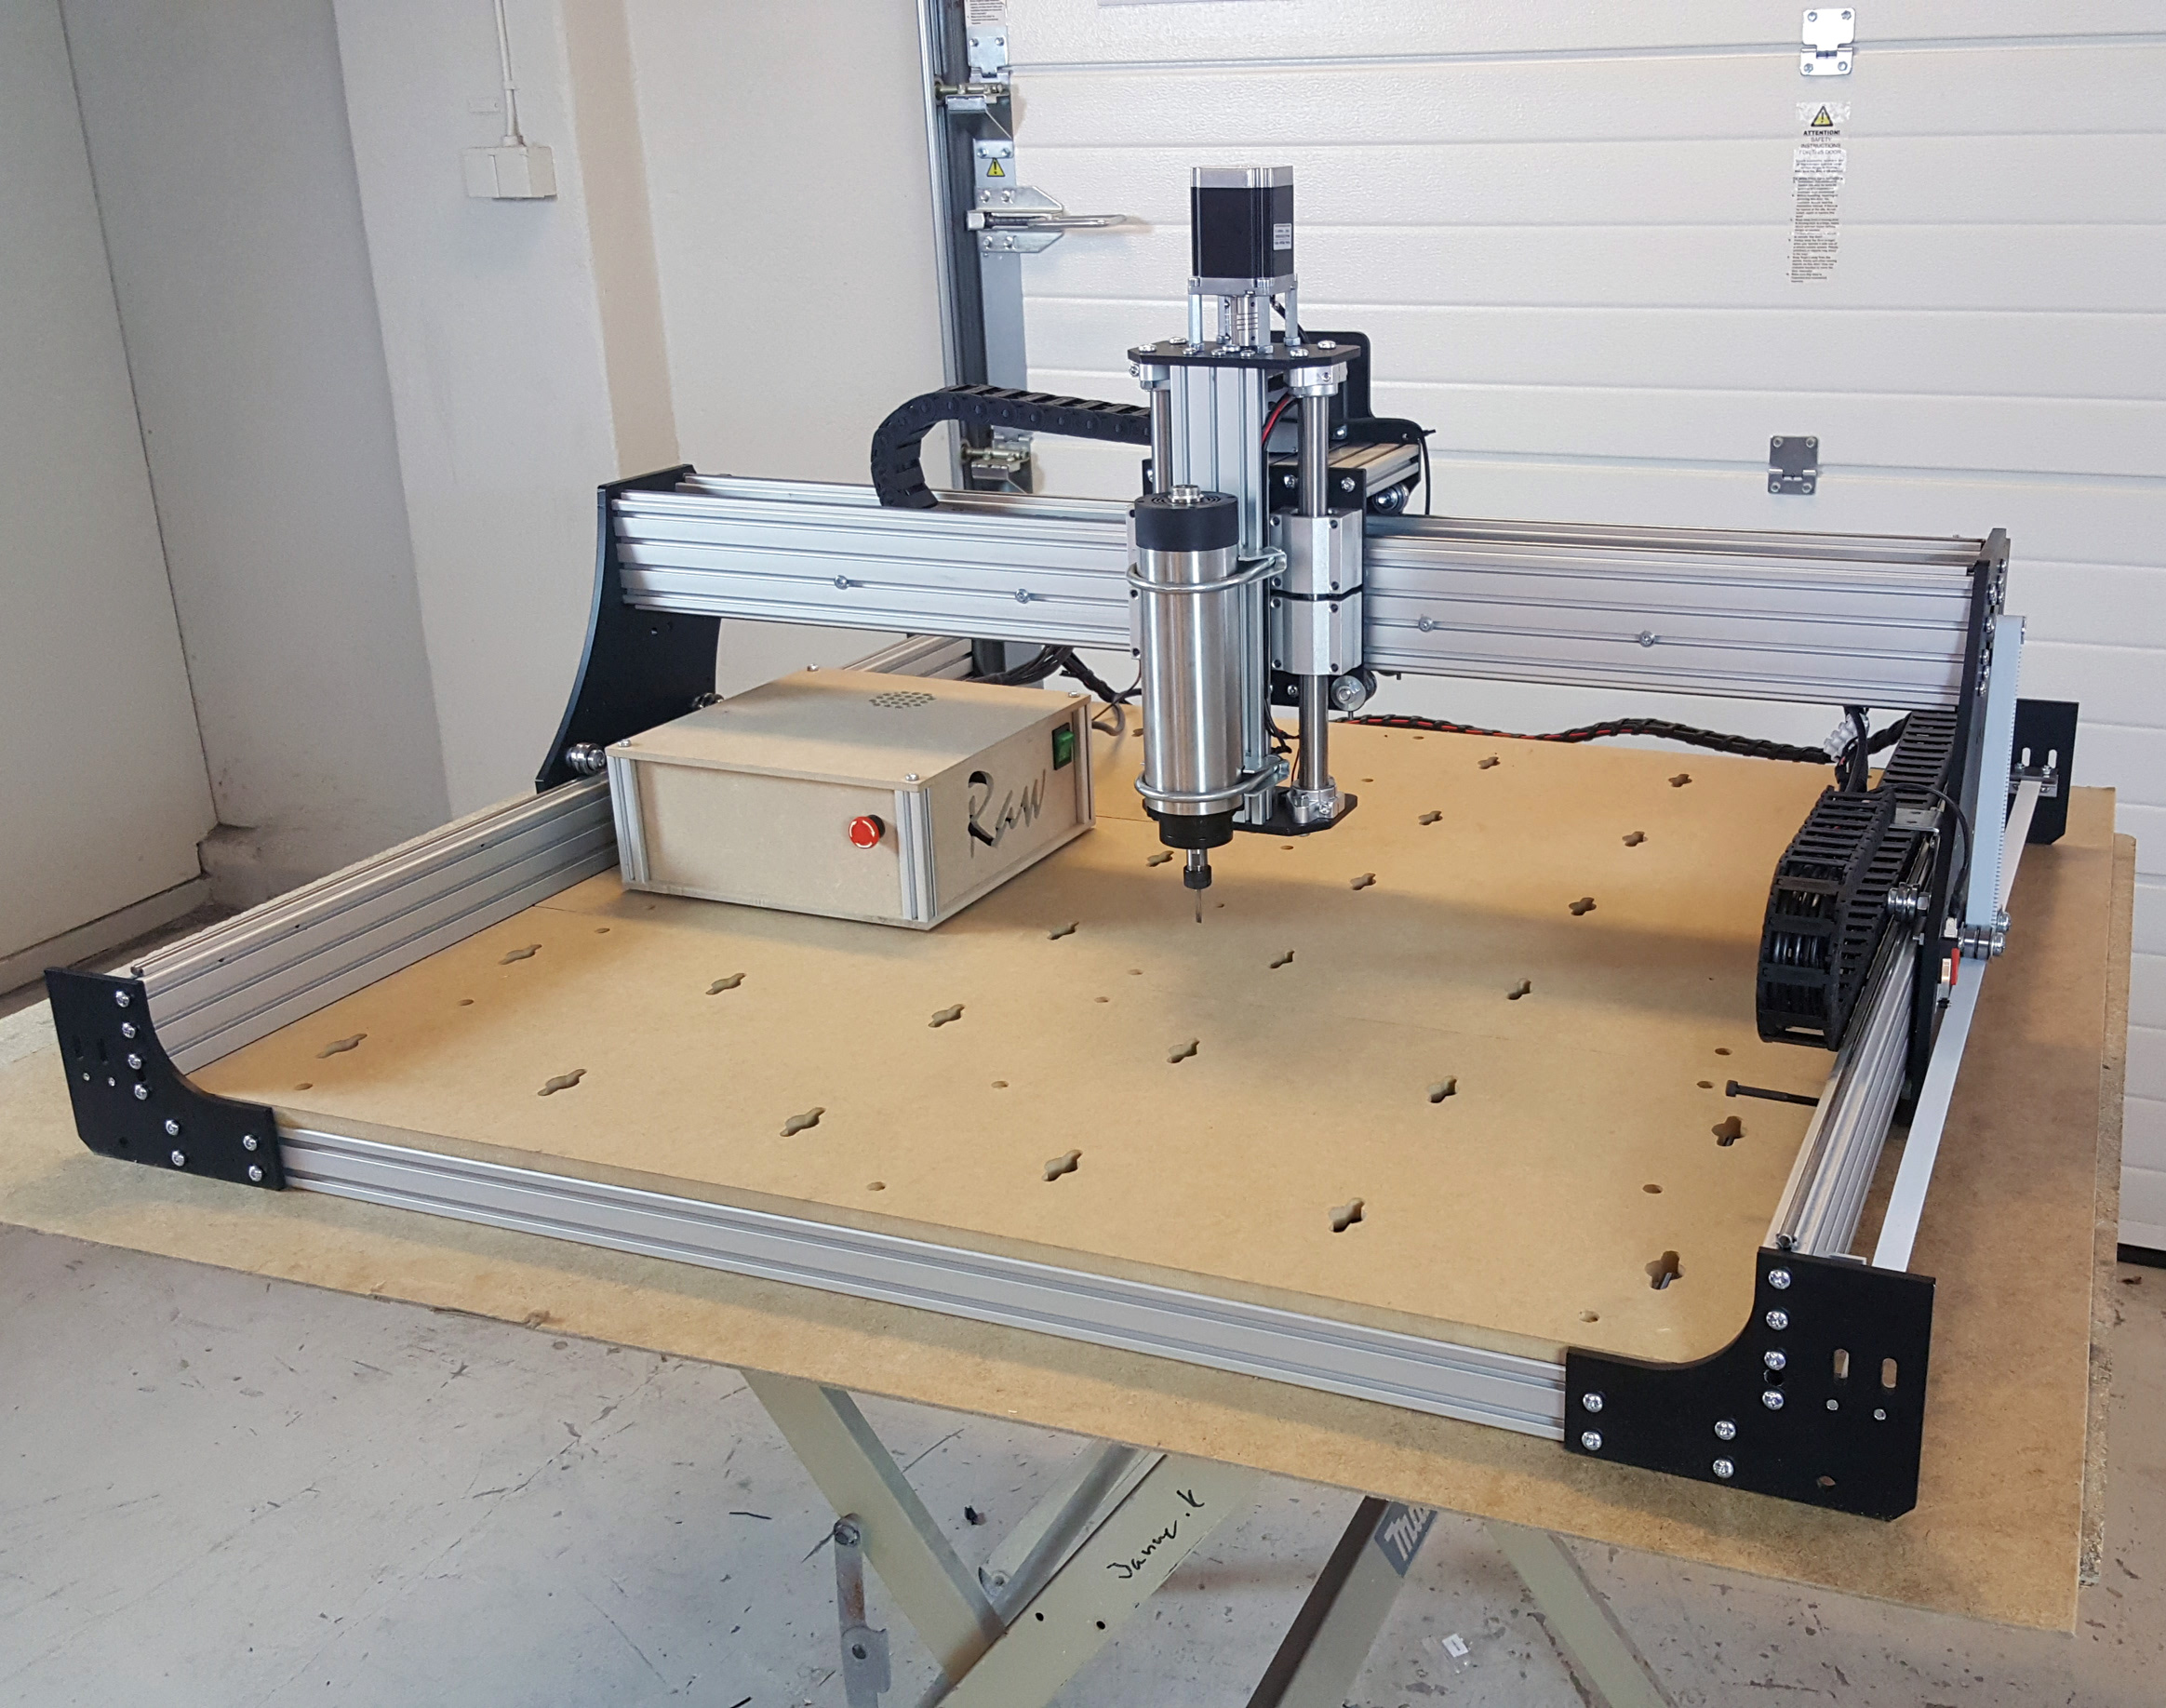 Raw 15 cnc do it yourself kit 100x100cm with belt drive rawcnc raw 15 cnc do it yourself kit 100x100cm with belt drive for pro or hobby solutioingenieria Image collections